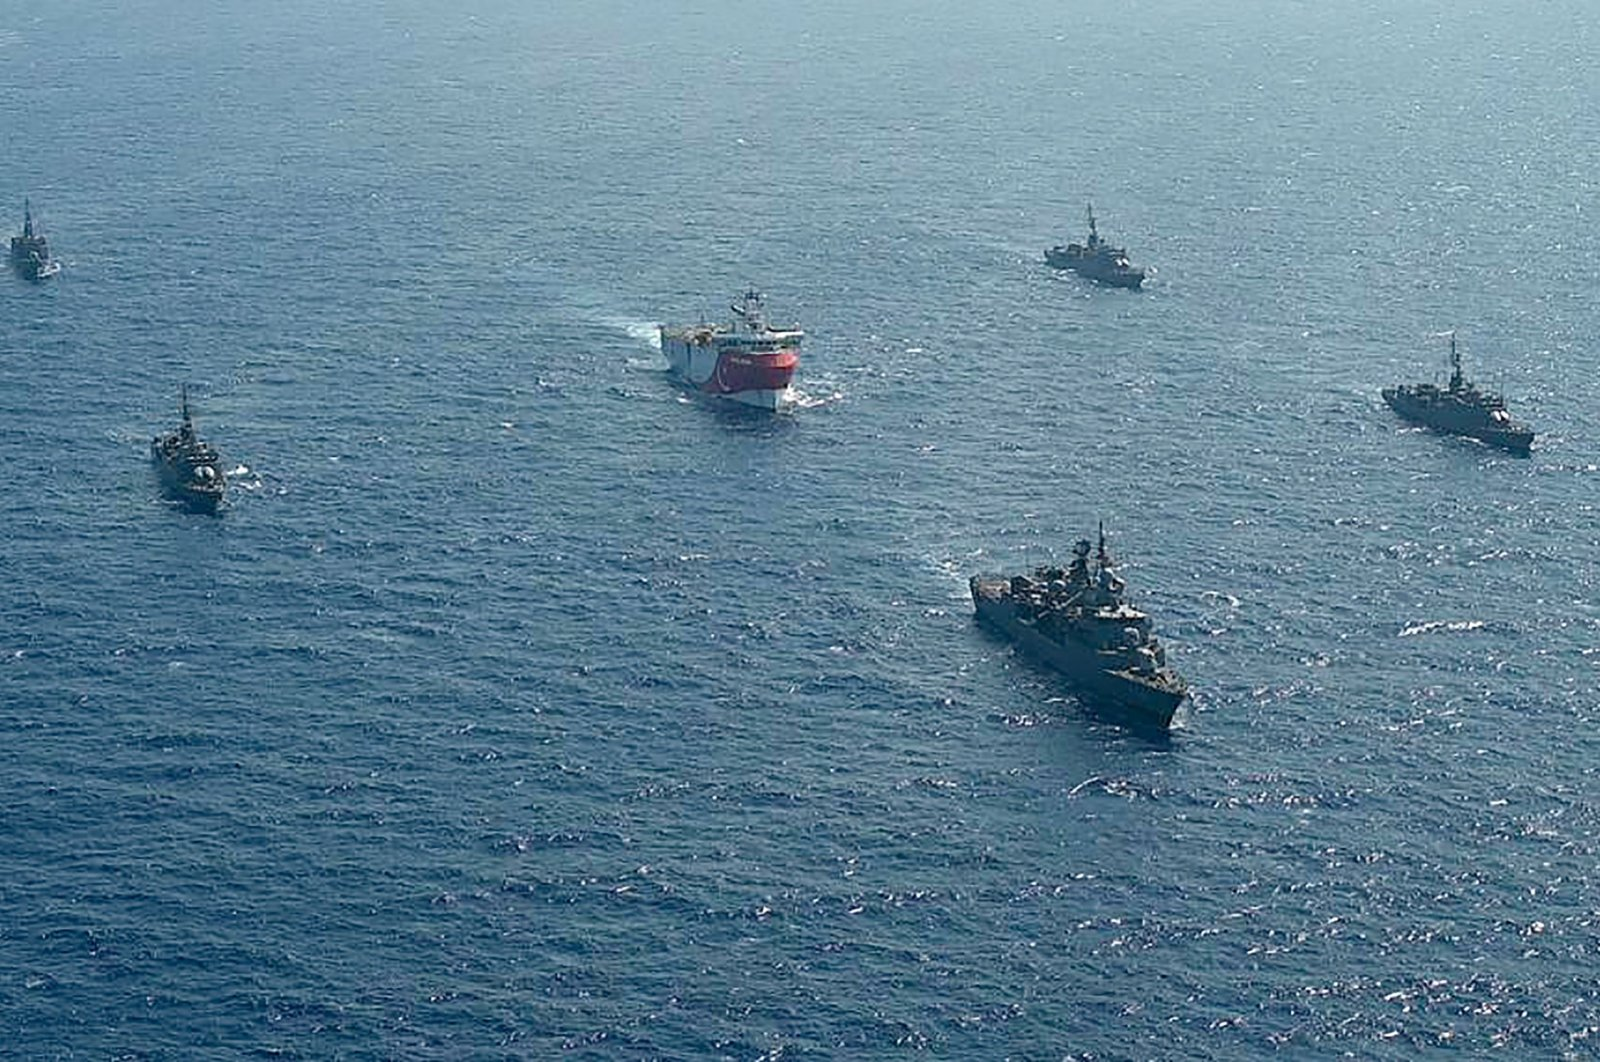 The Turkish seismic research vessel Oruc Reis (C) is escorted by Turkish naval ships in the Mediterranean Sea, off Antalya on Aug. 10, 2020. (AFP Photo)